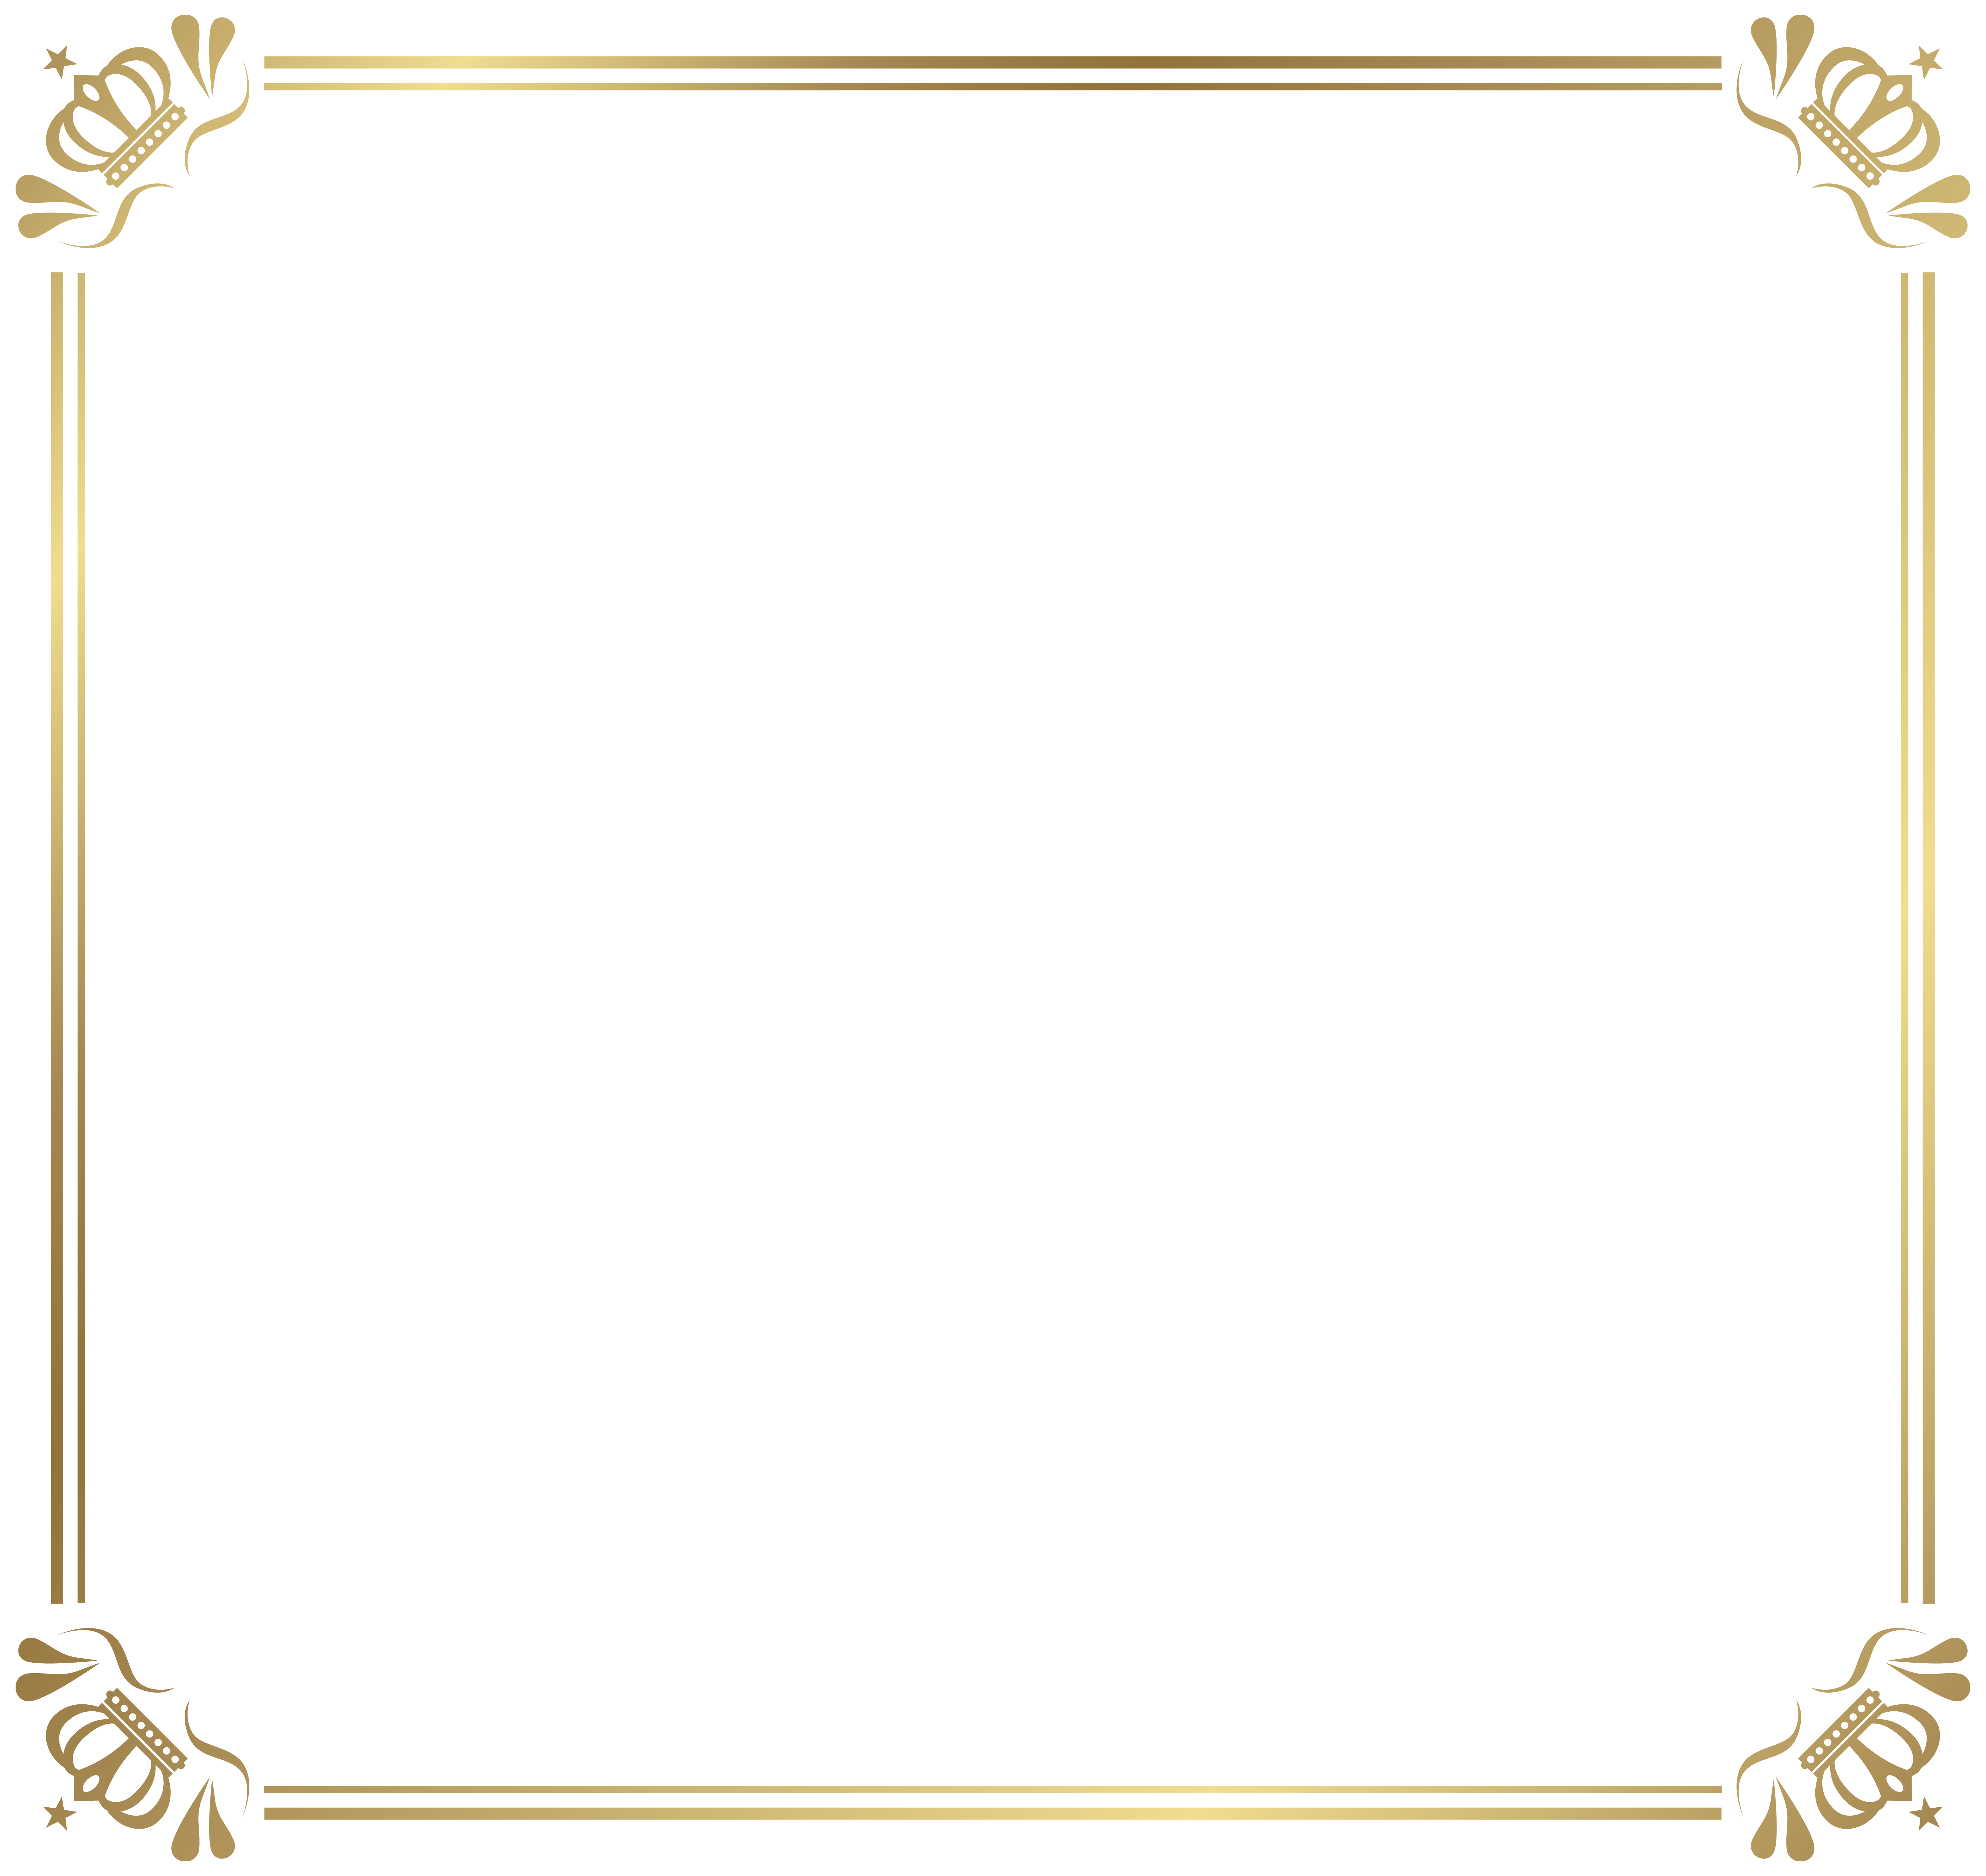 png library stock Menu clipart menu frame. Border with crowns png.